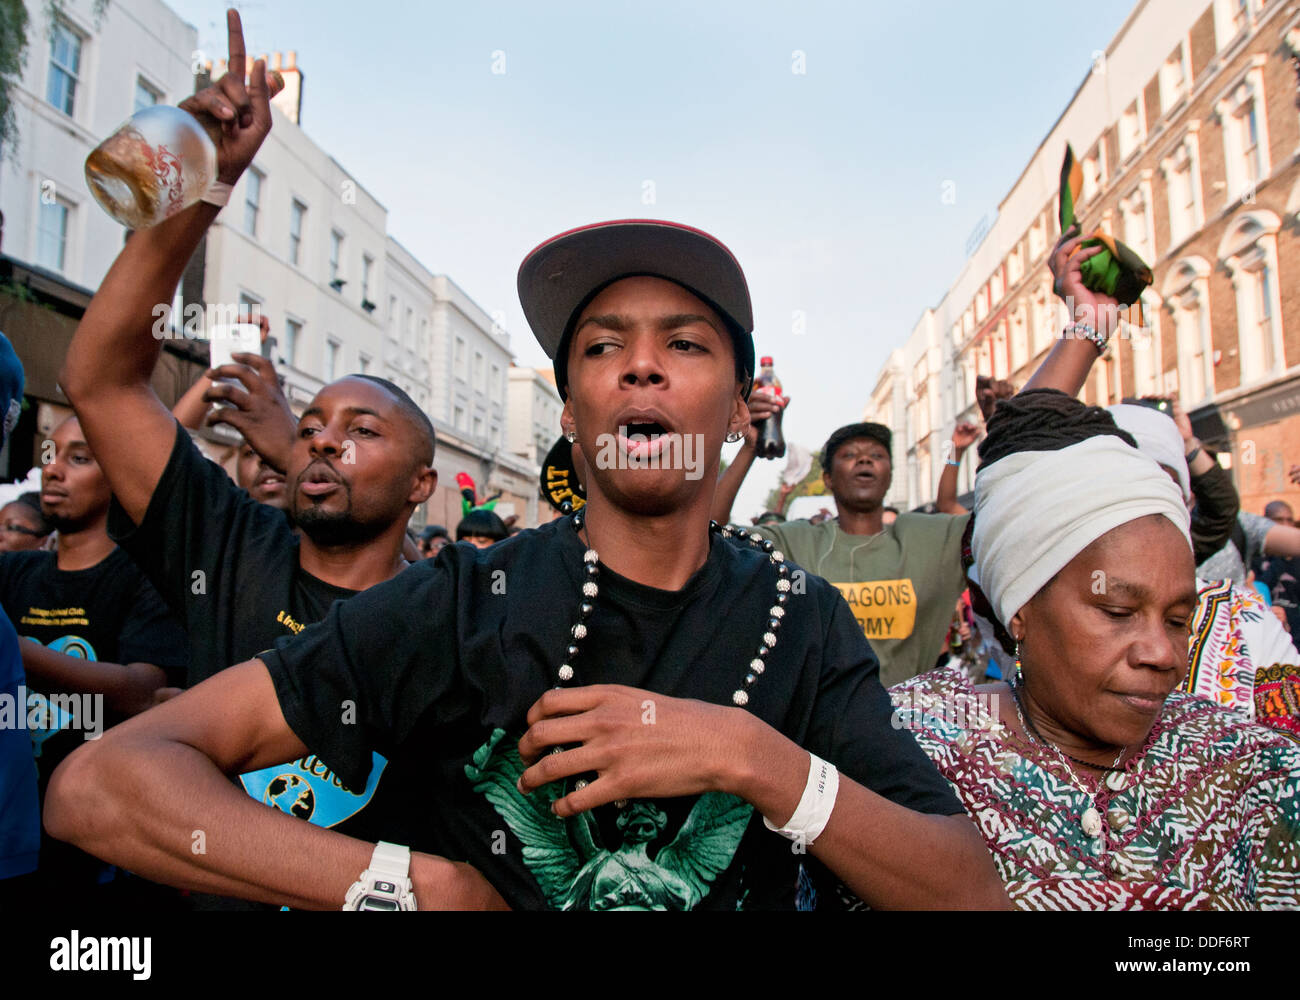 Festival goers at Notting Hill Carnival in West London - Stock Image